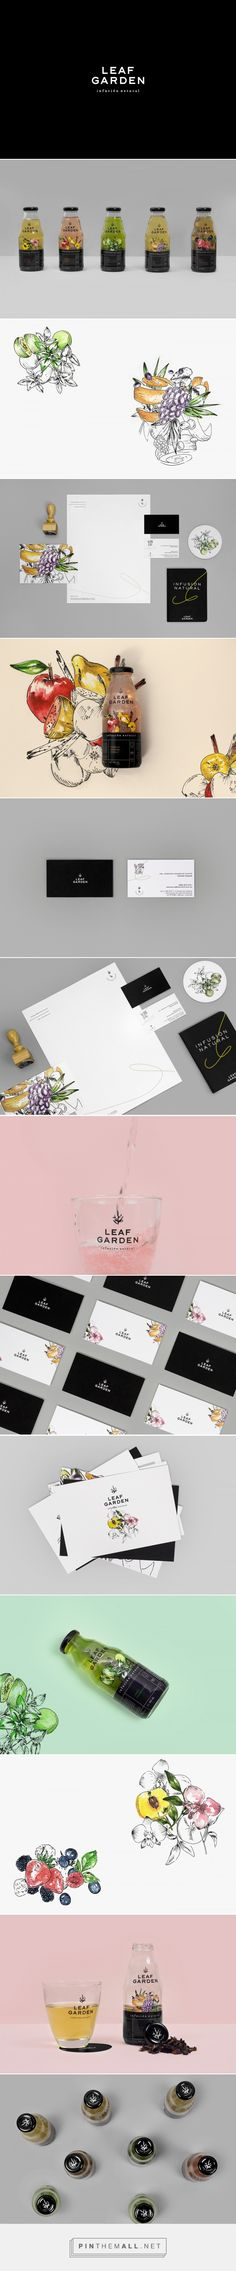 Leaf Garden Natural Drink Branding and Packaging by Bienal Communicacion | Fivestar Branding Agency – Design and Branding Agency & Curated Inspiration Gallery